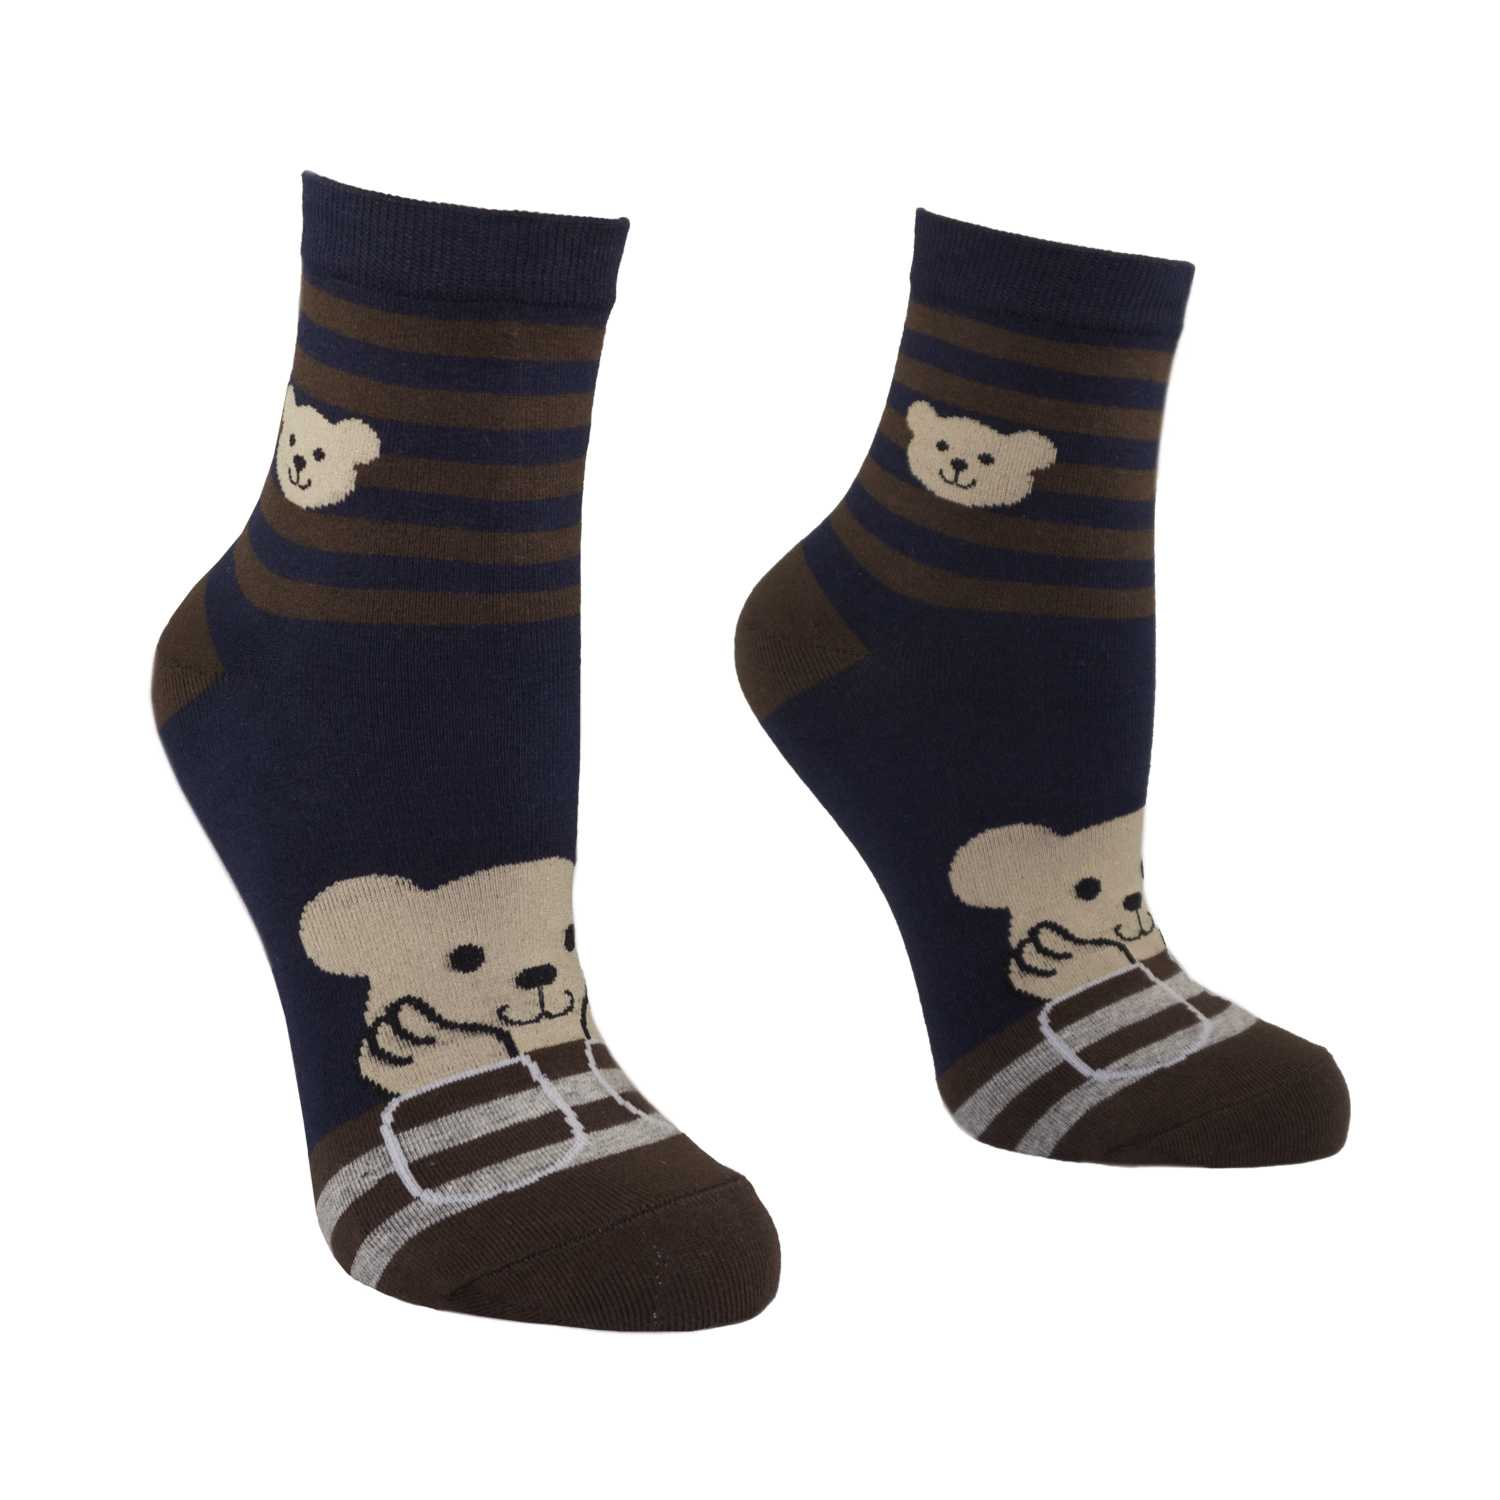 Women's Pretty Bear Design Crew Socks - Navy - Zestique